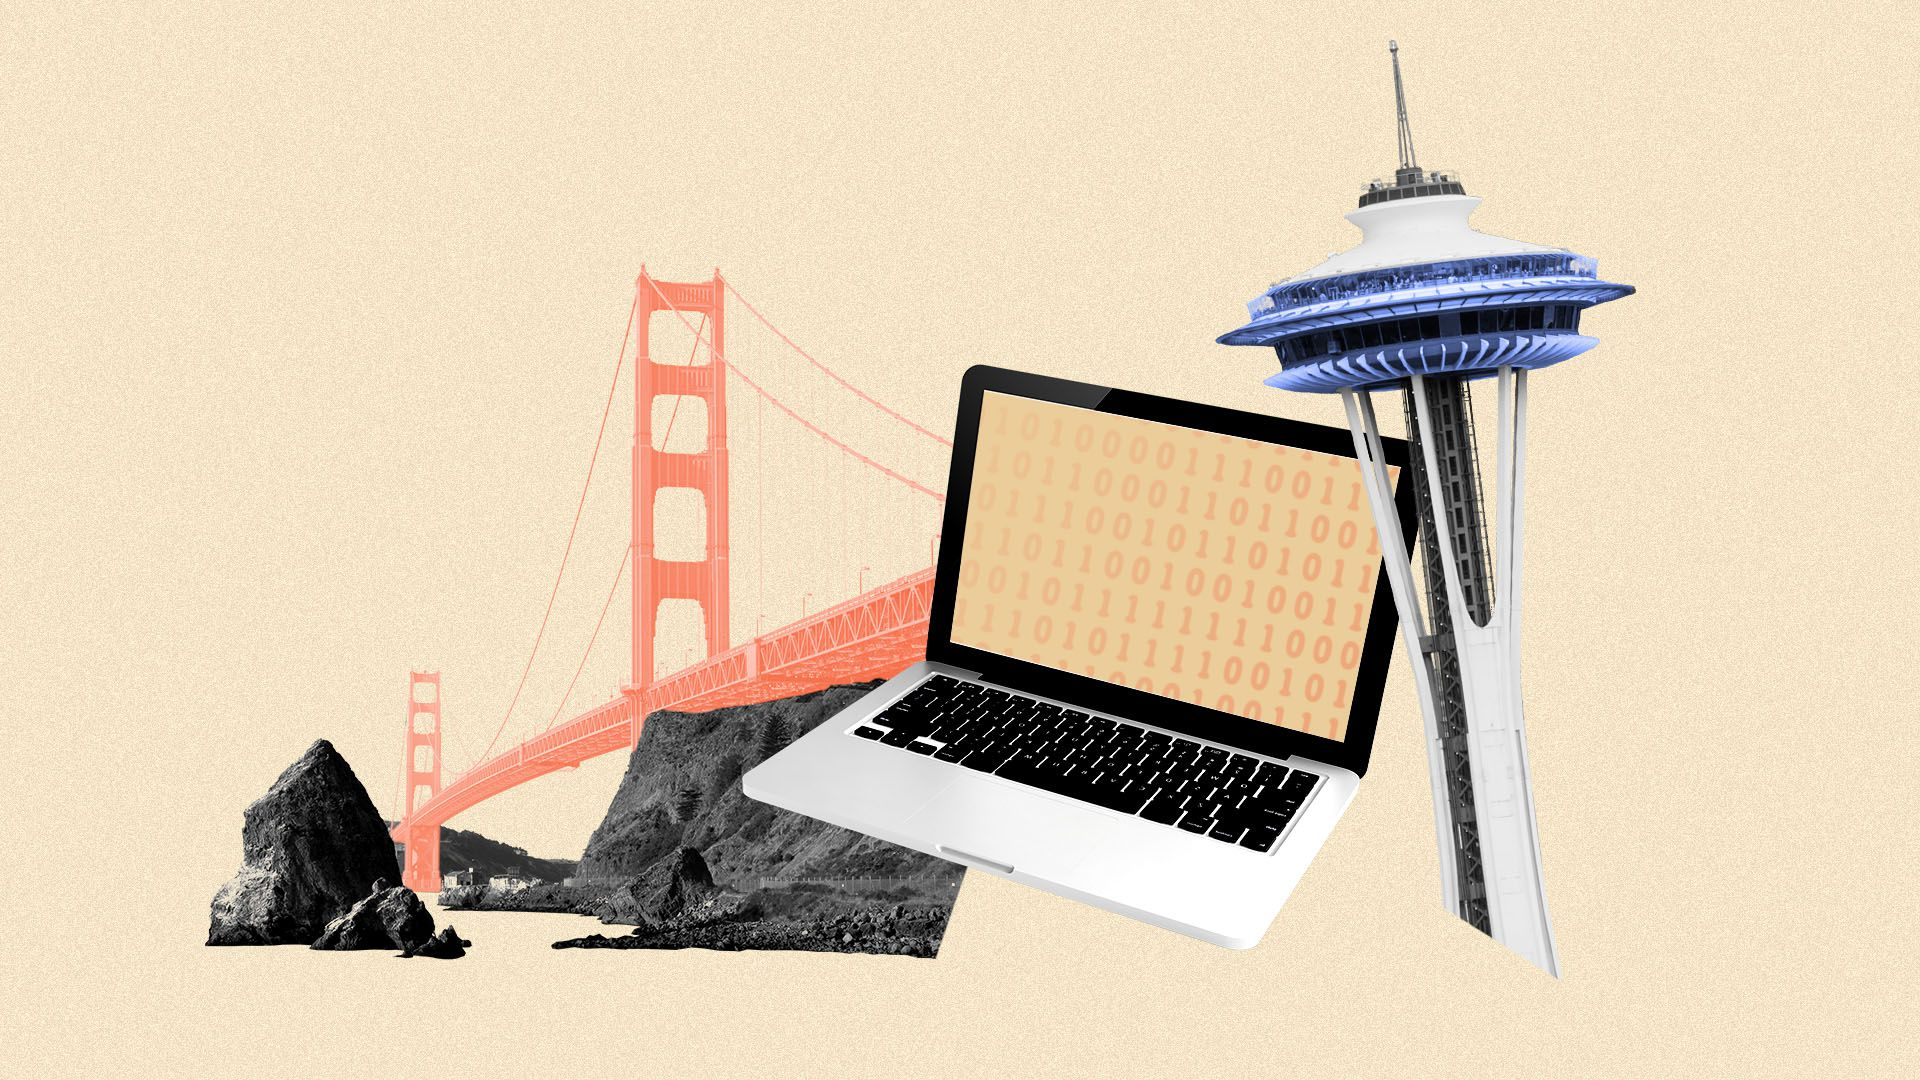 Illustration of a laptop collaged with the Golden Gate Bridge and the Space Needle